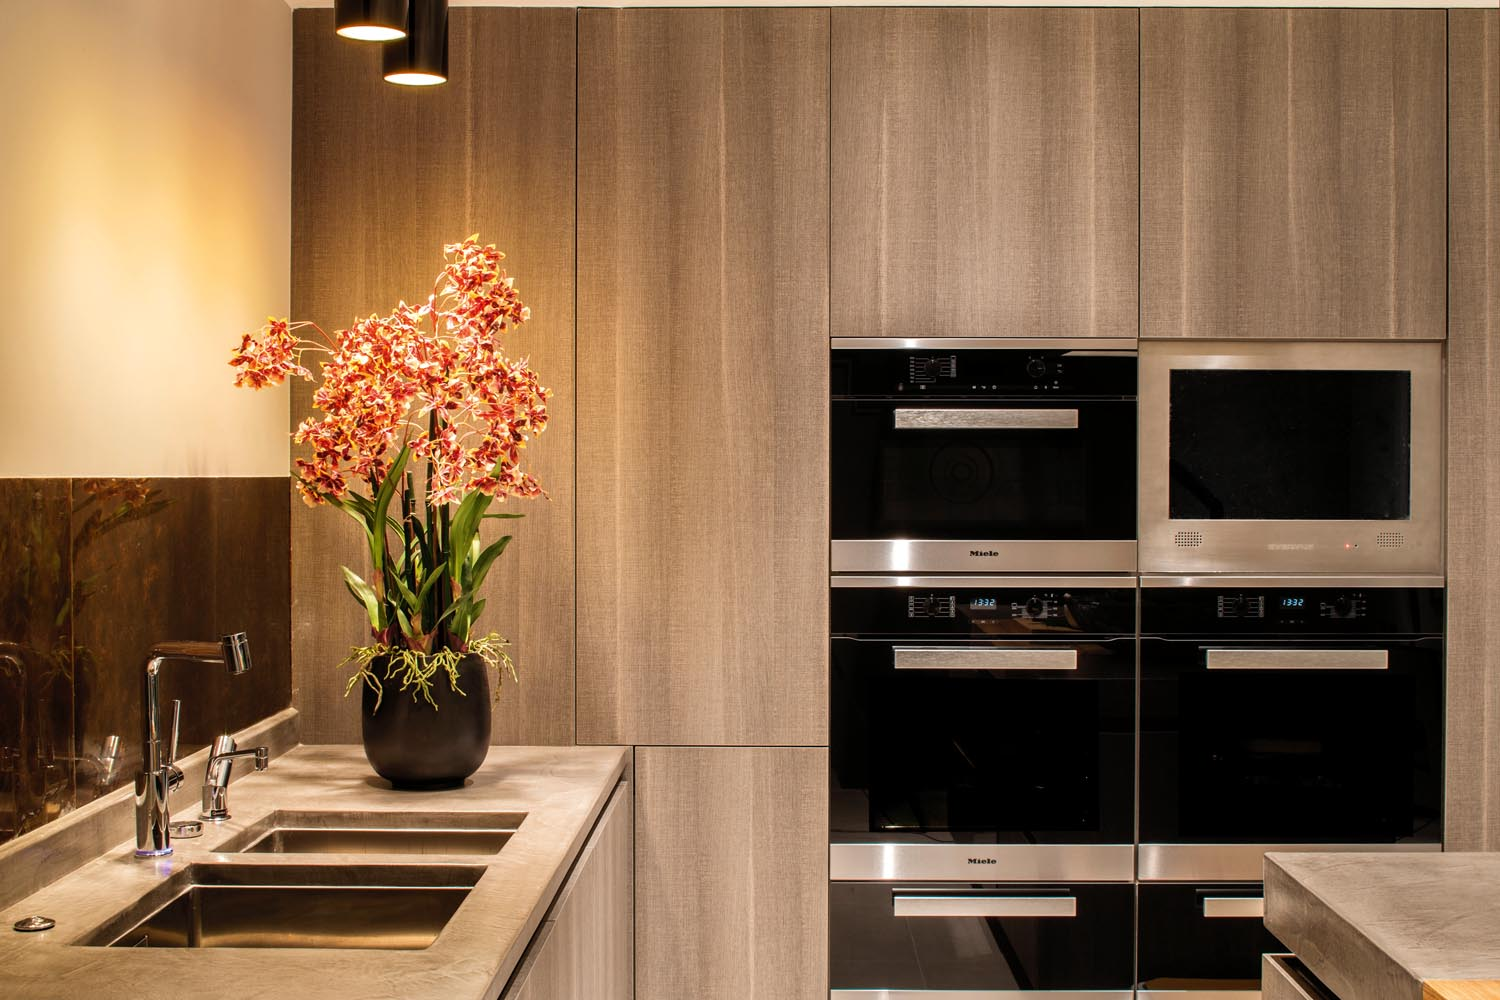 A chef's dream, the kitchen  features an array of appliances including a double oven and steamer